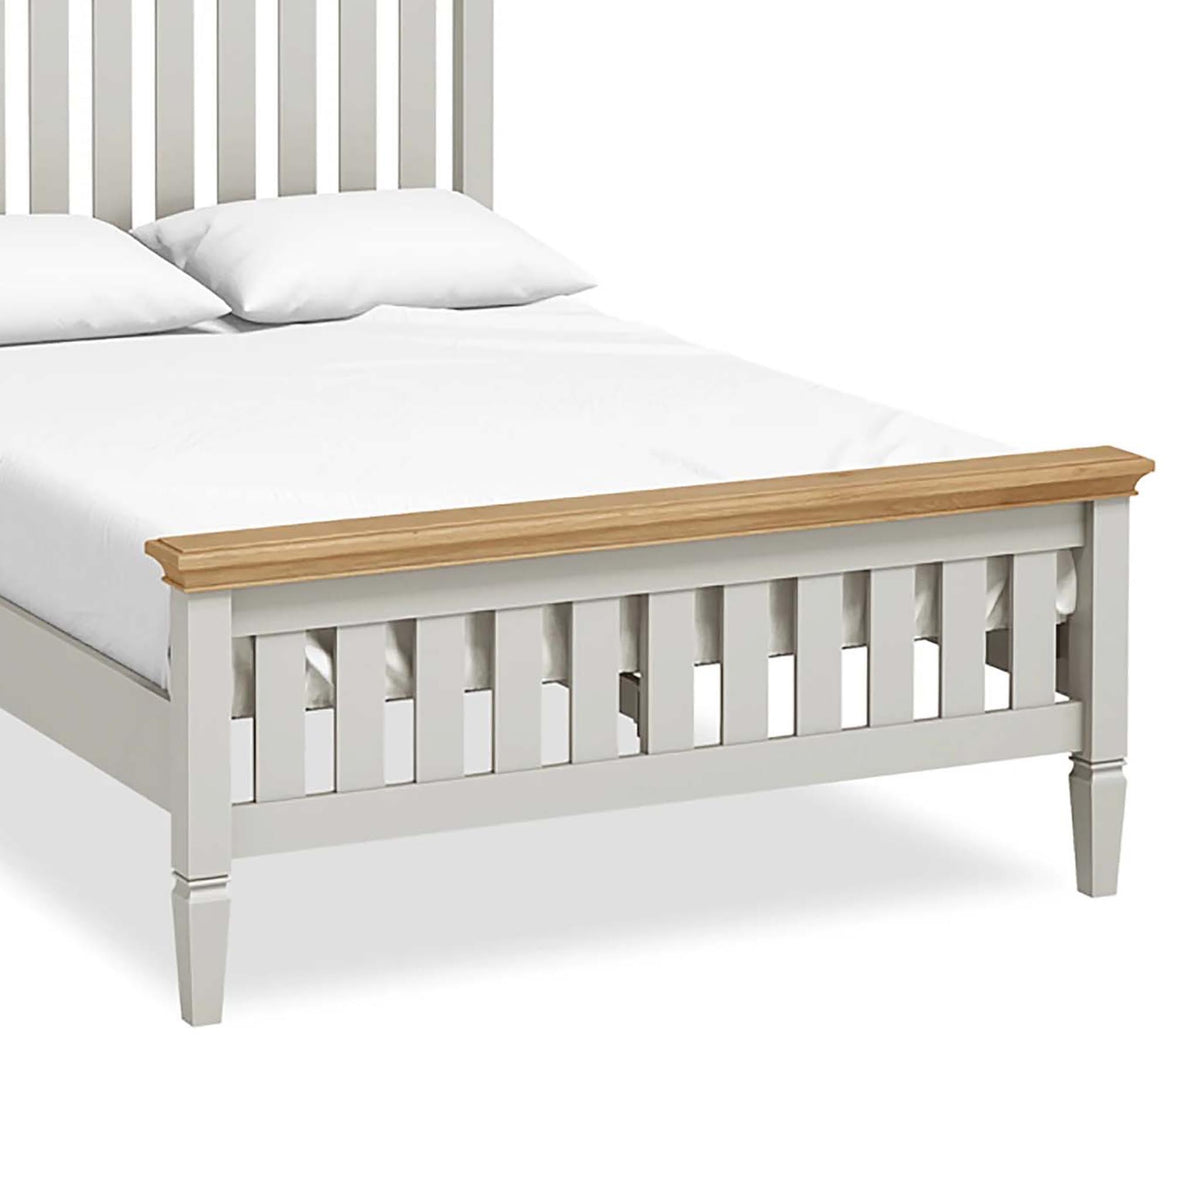 "Normandy Grey 4'6"" Bed Frame - Close Up of Bed End"